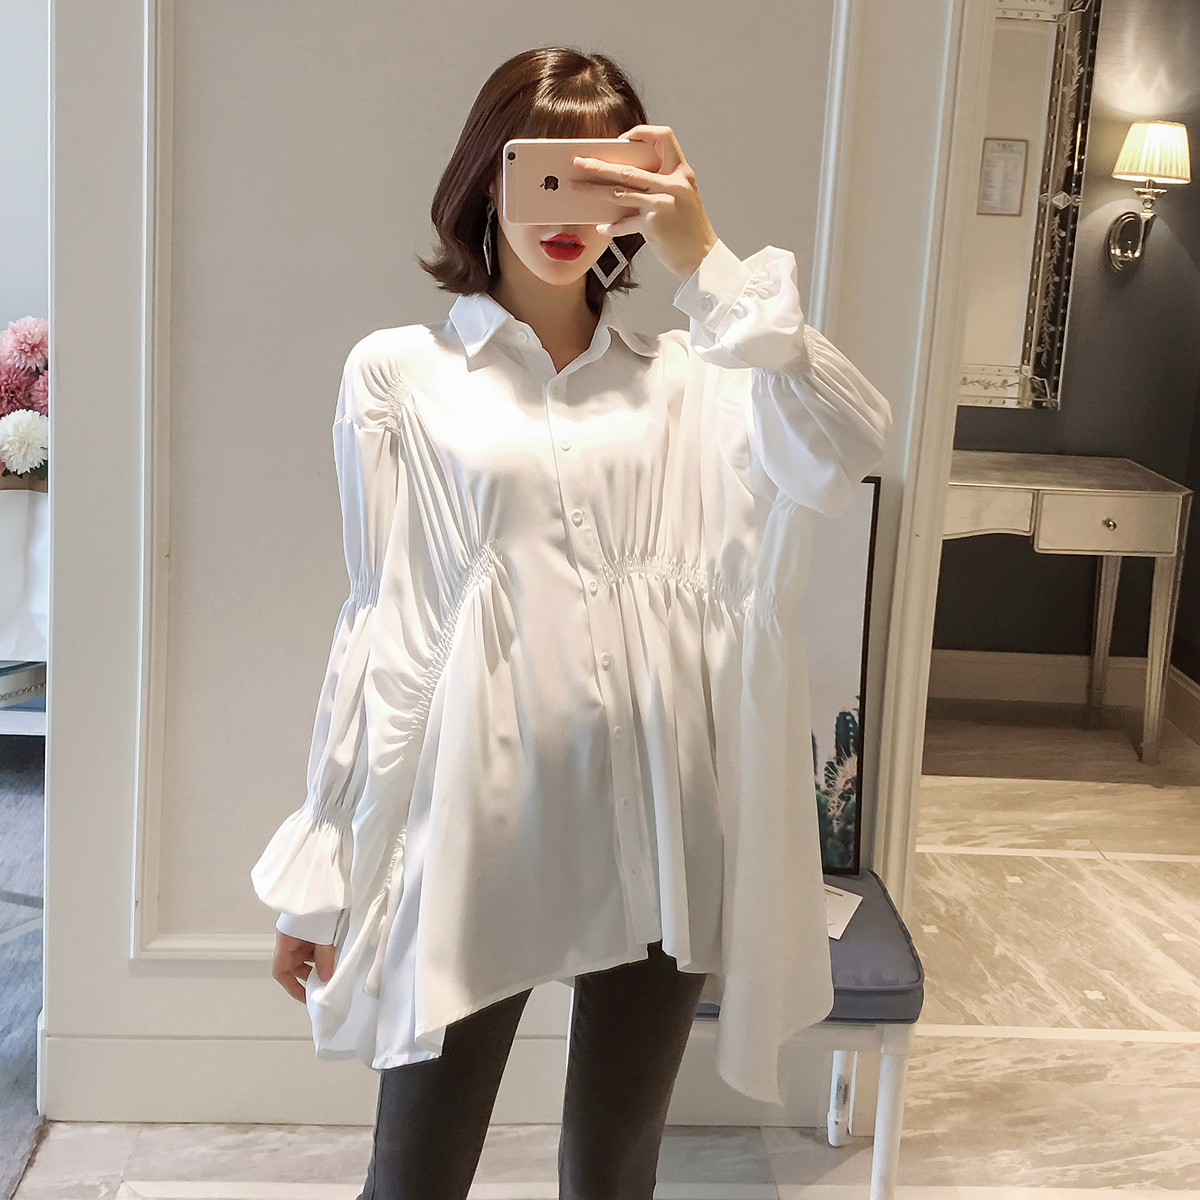 Korean Fashion Maternity Clothes Irregular Hem Clothes for Pregnant Women Spring Autumn Comfortable Pregnancy Women's Clothing